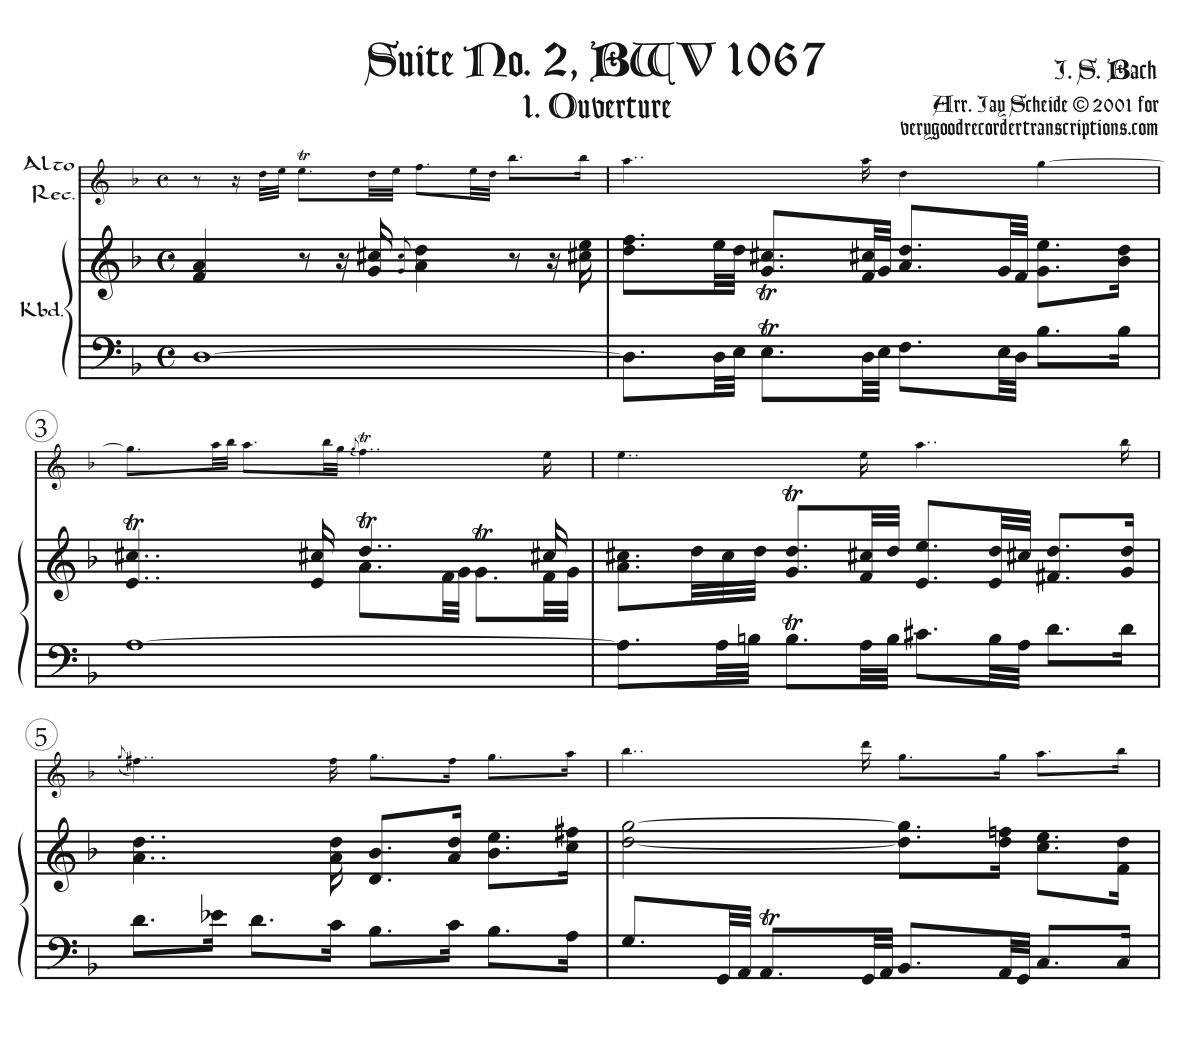 Orchestral Suite No. 2, BWV 1067